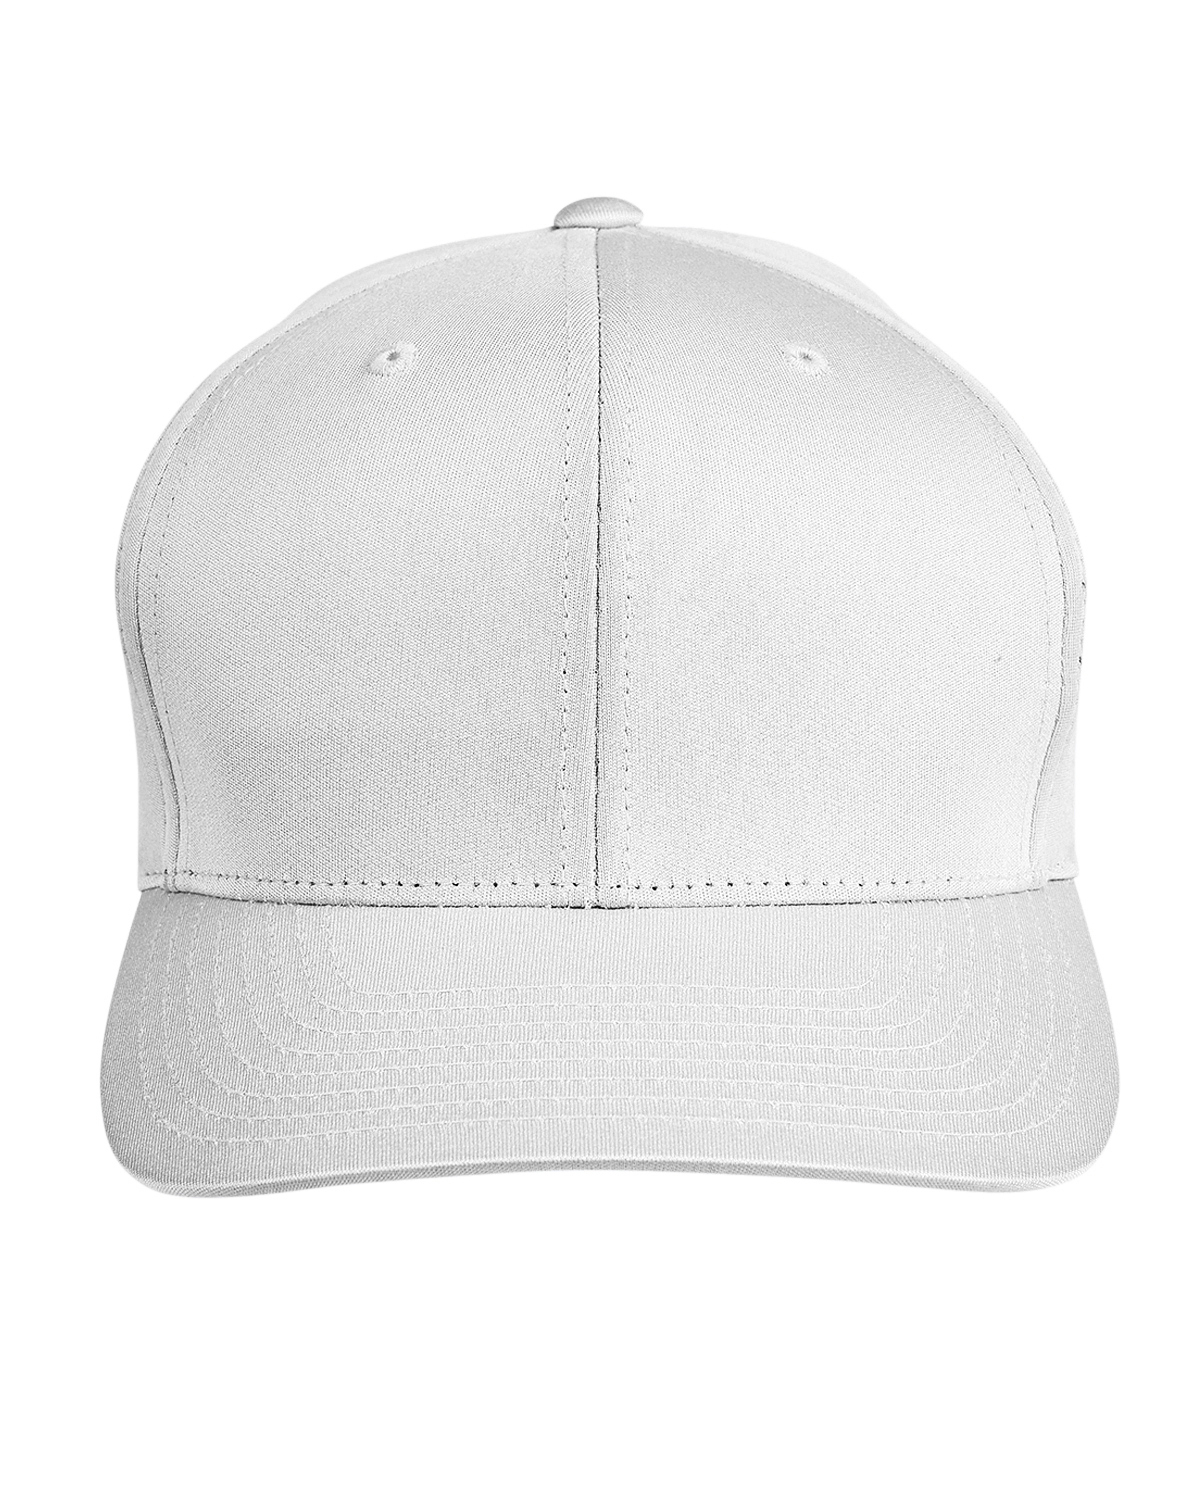 by Yupoong® Adult Zone Performance Cap